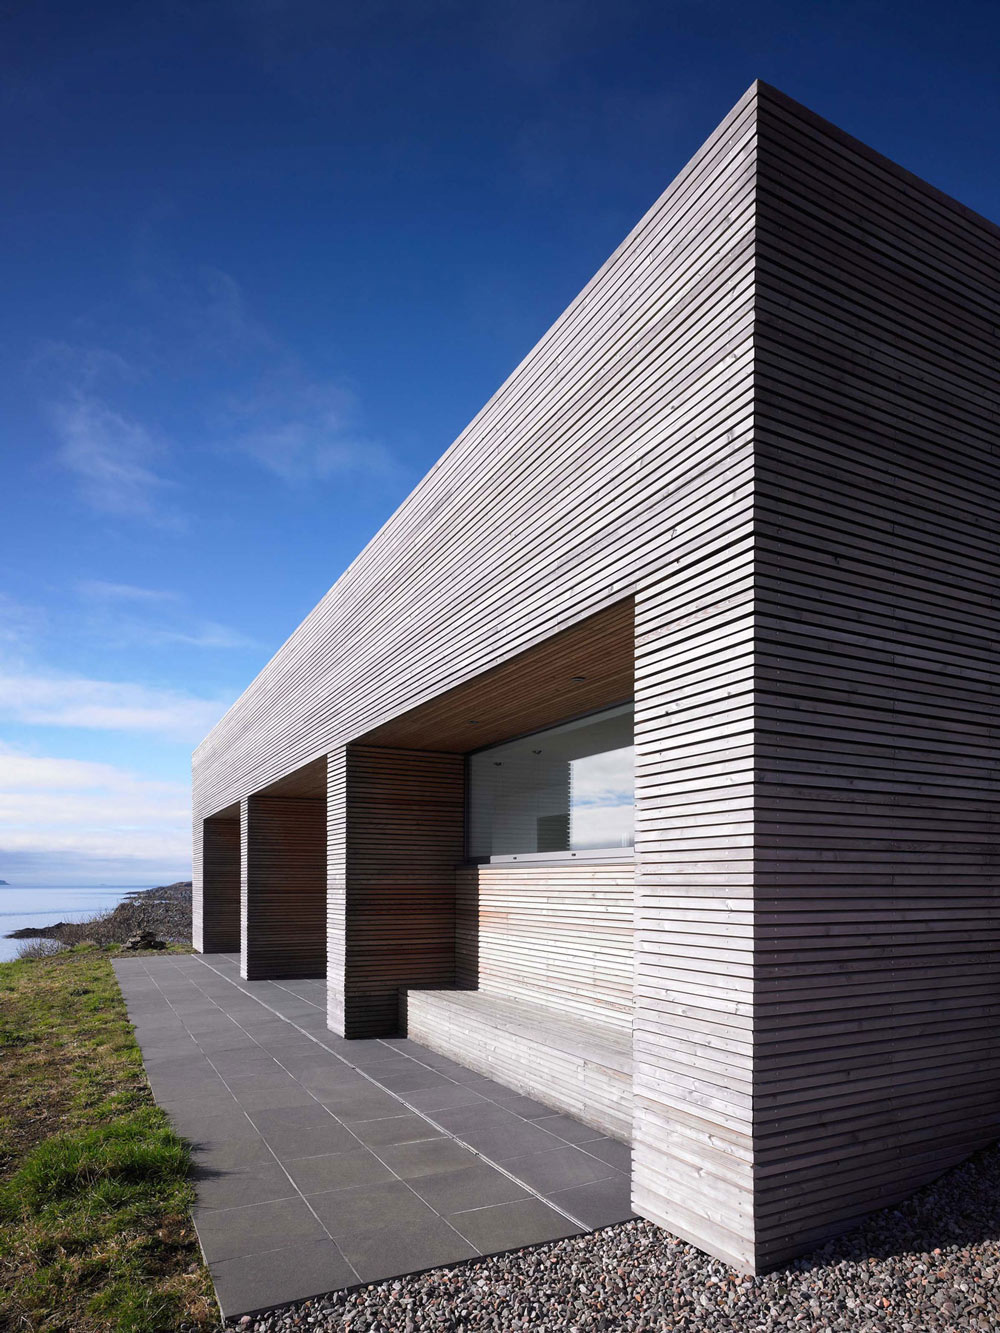 Tiled Terrace, Side Facade, Contemporary Home on the Isle of Skye, Scotland